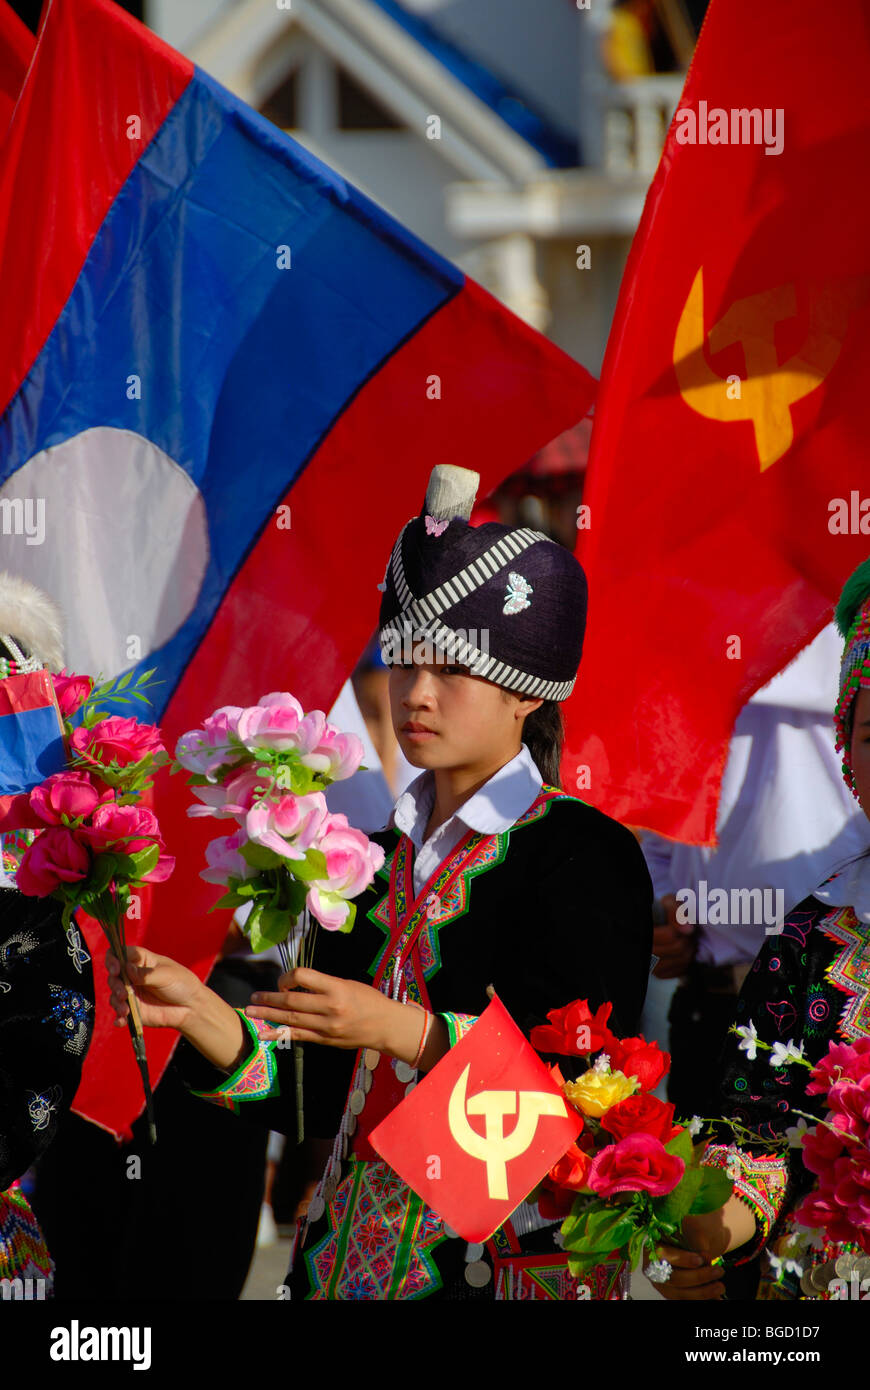 Festival, Hmong girl, dressed in traditional clothing, holding red flags of the Communist Party, national flag of Laos, Xam Neu Stock Photo